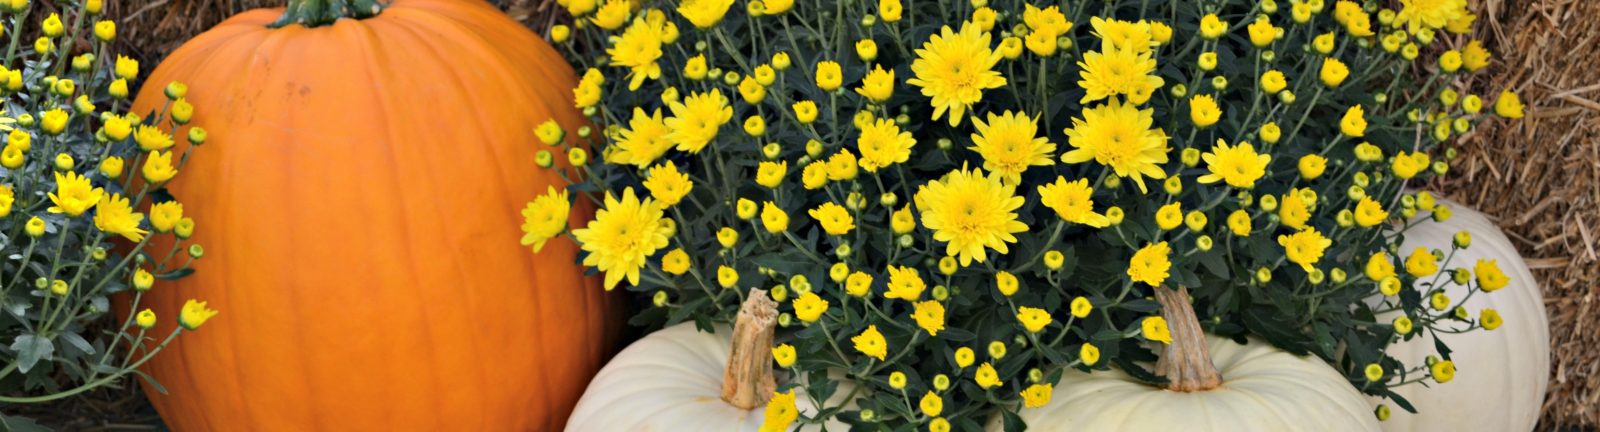 yellow mums and pumpkins